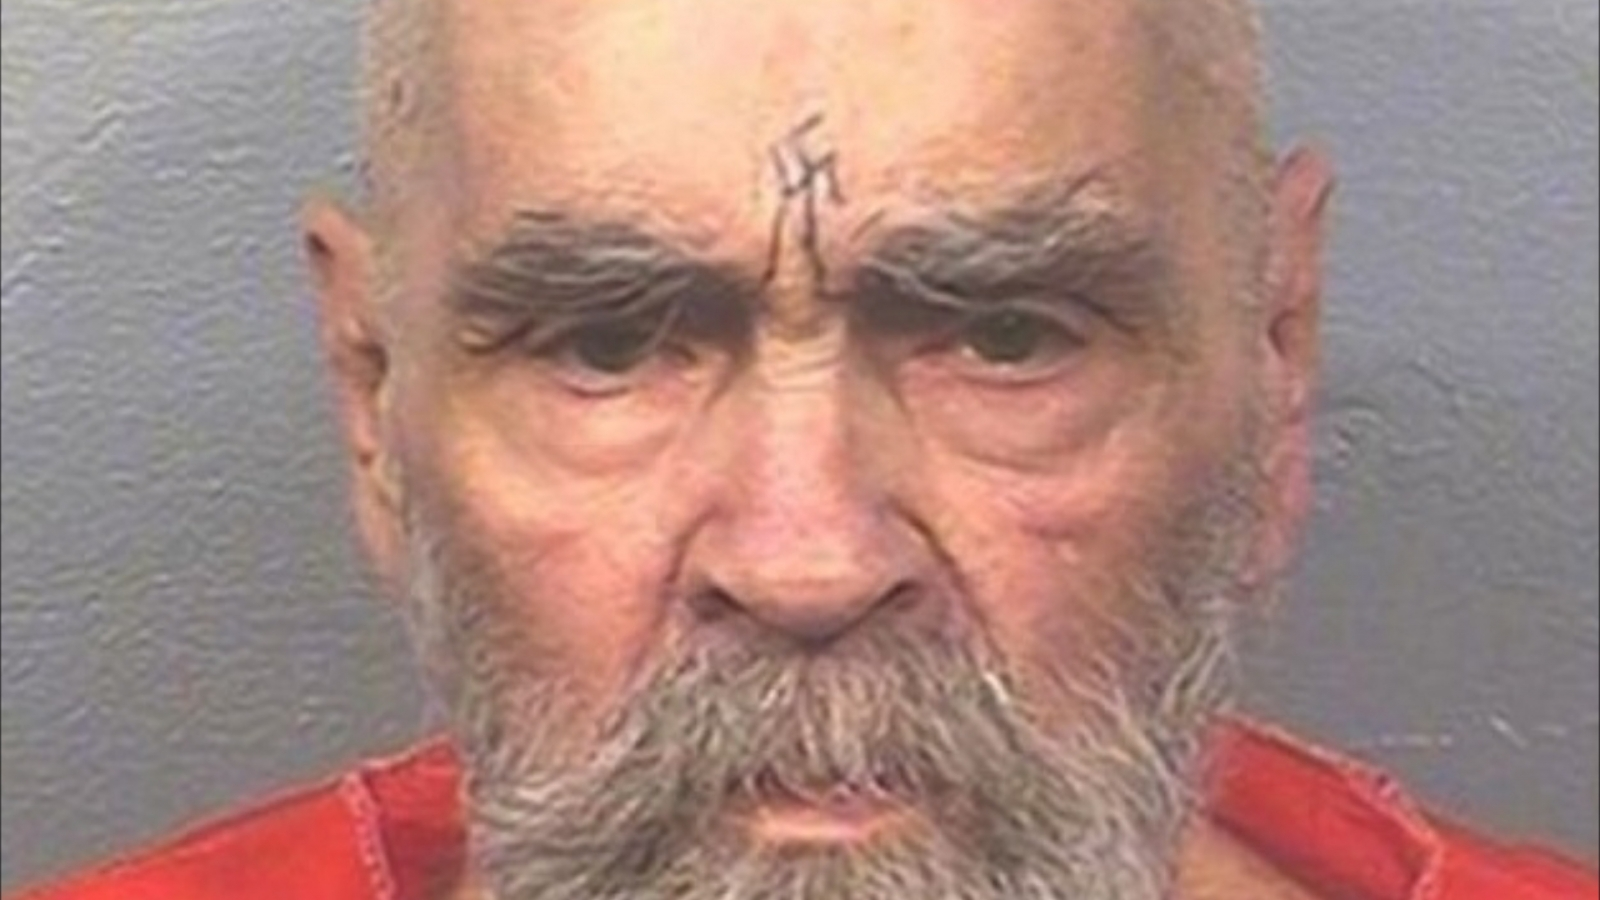 charles-manson-was-the-ultimate-white-supremacist